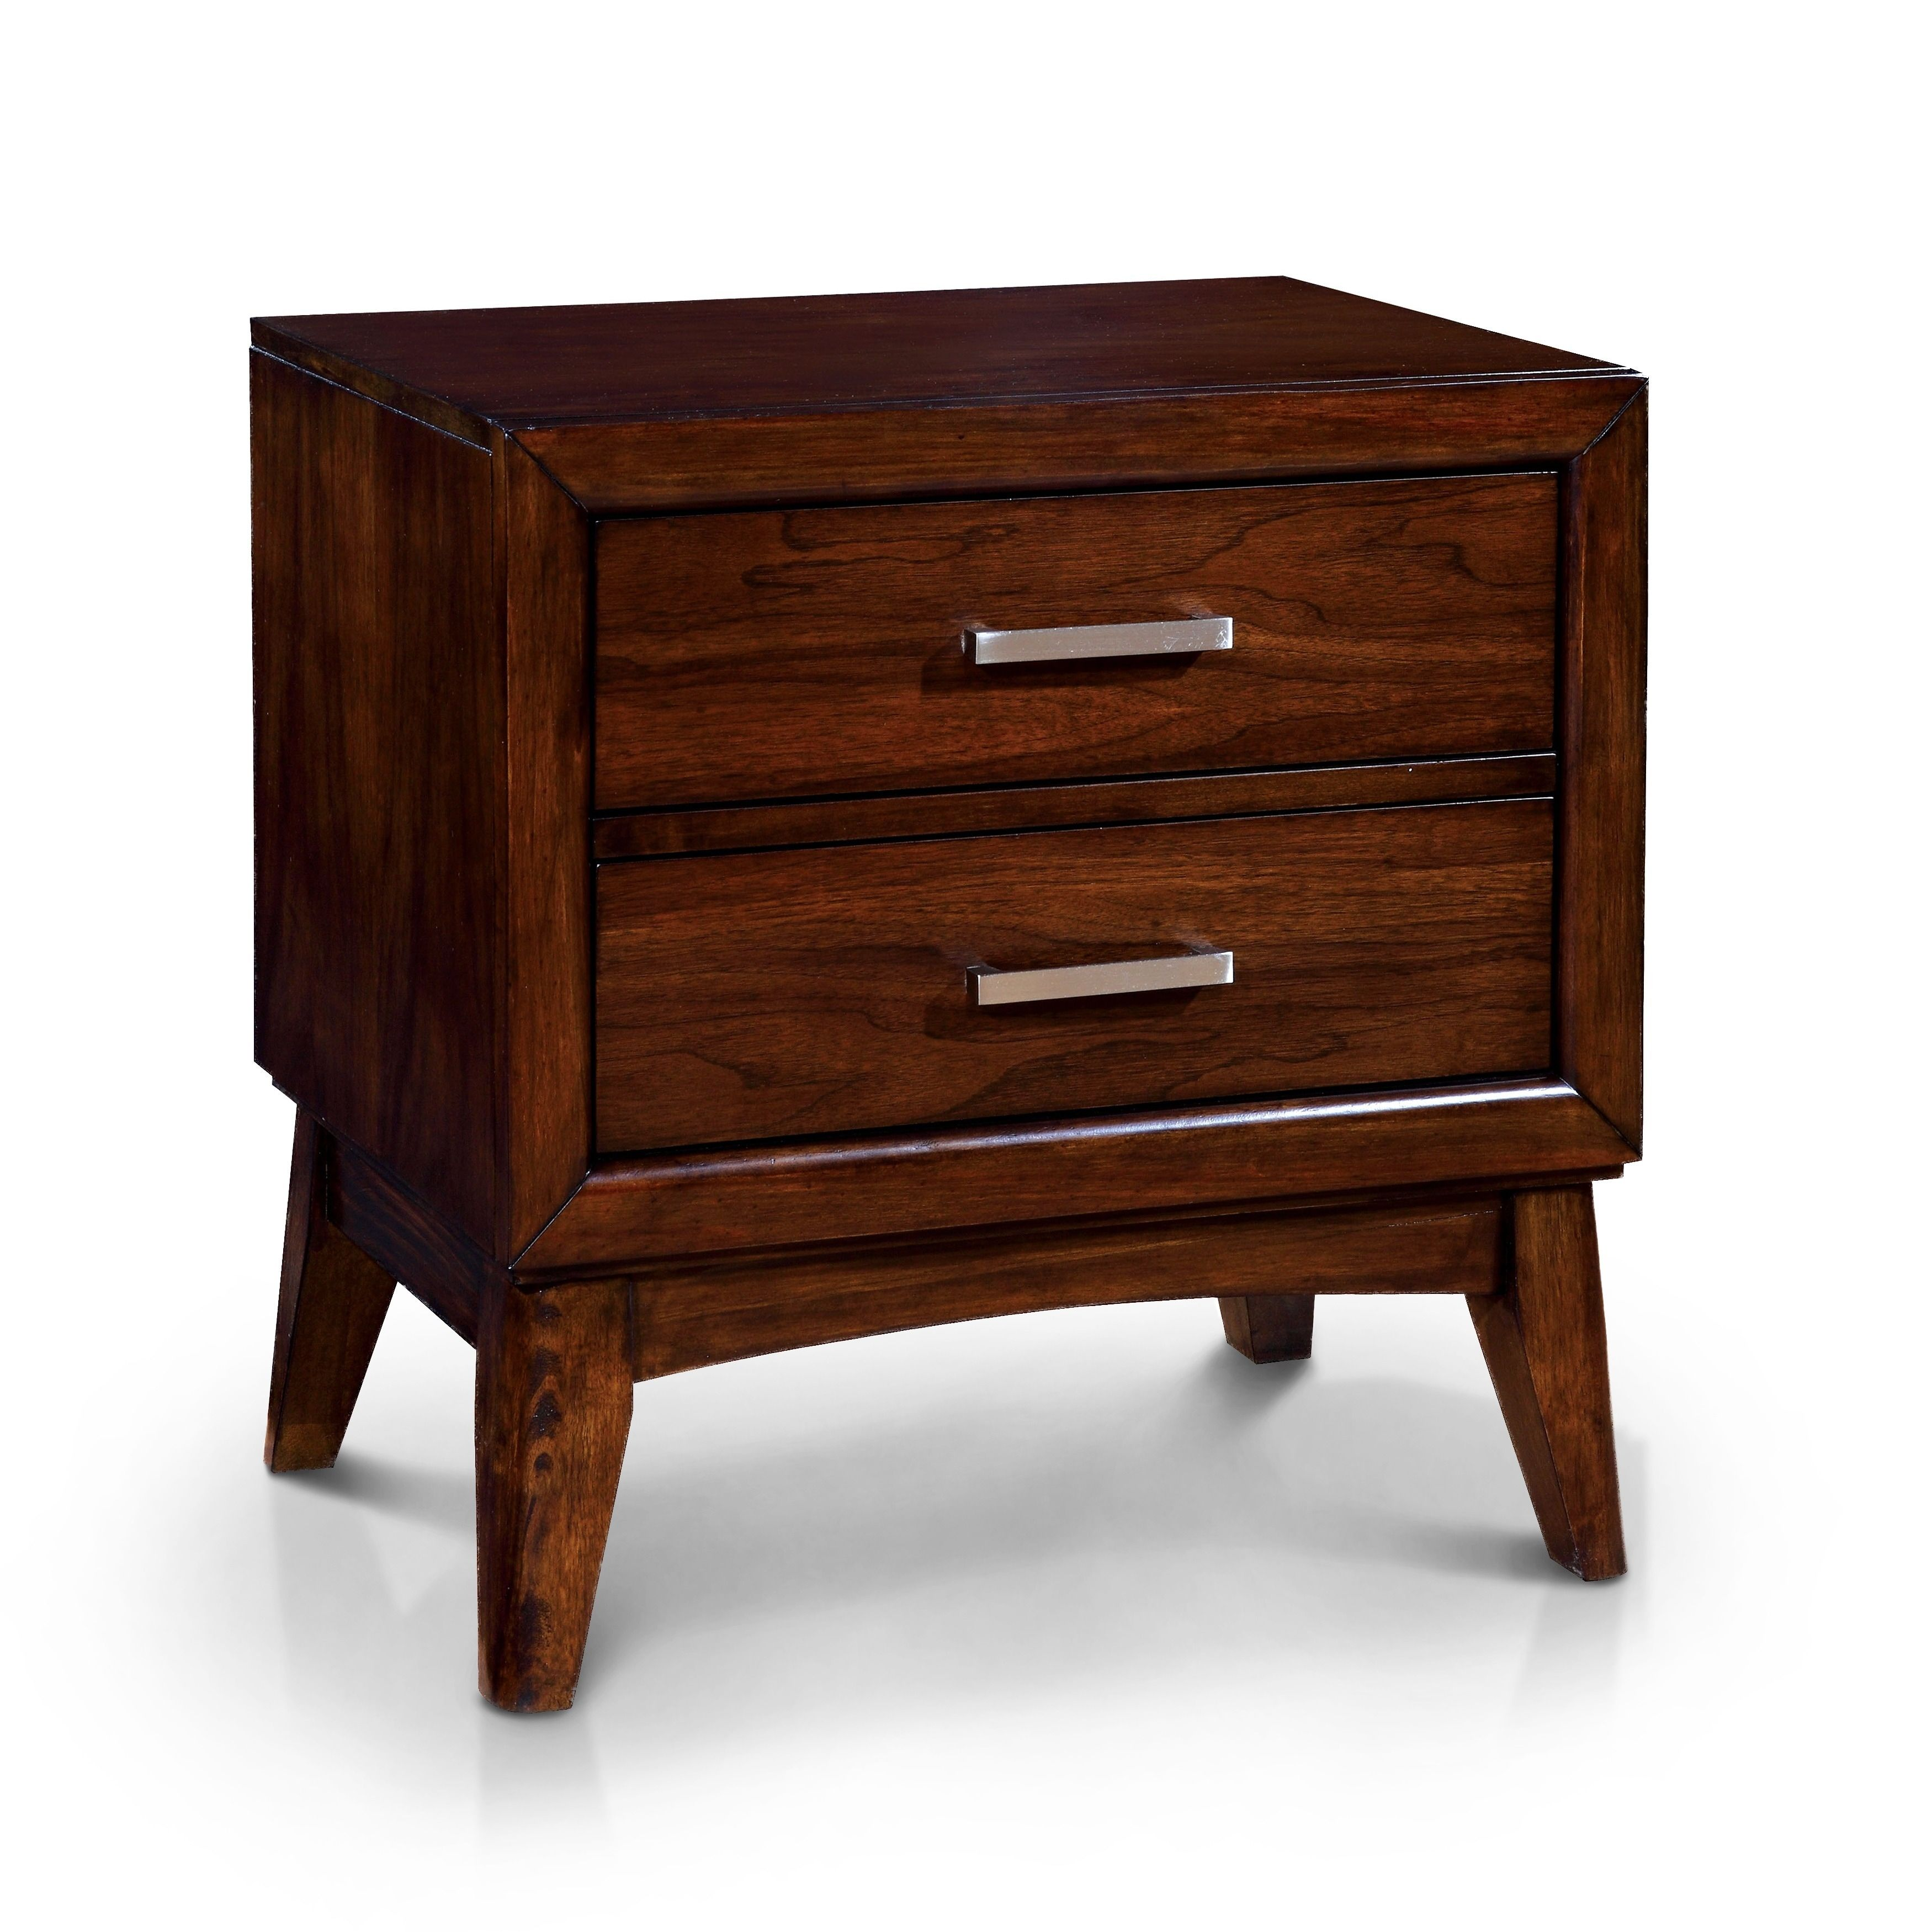 Copper Grove Kinglake Cherry 2-drawer Mid-century Style